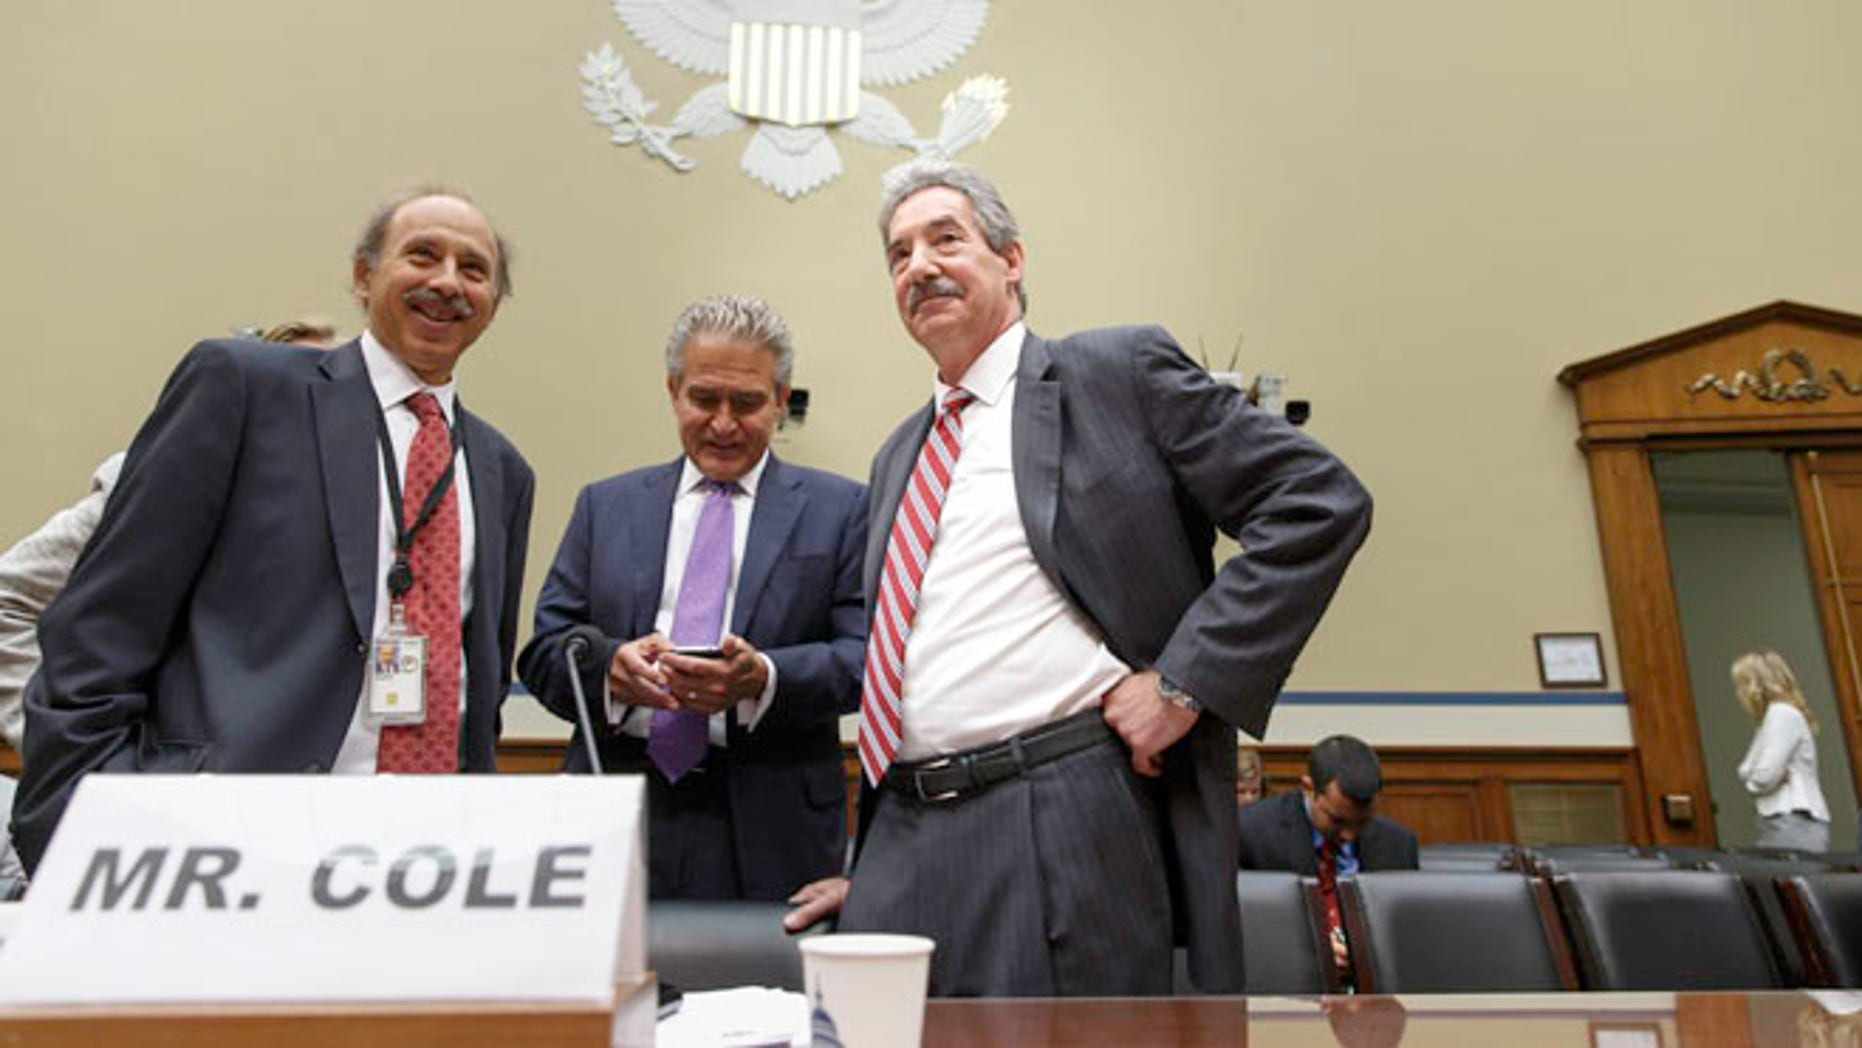 Deputy Attorney General James Cole, right, arrives on Capitol Hill in Washington, Thursday, July 17, 2014, to testify before the House  Economic Growth, Job Creation, and Regulatory Affairs subcommittee hearing on how the Justice Department is investigating allegations that the Internal Revenue Service (IRS) targeted conservative political groups for extra scrutiny.